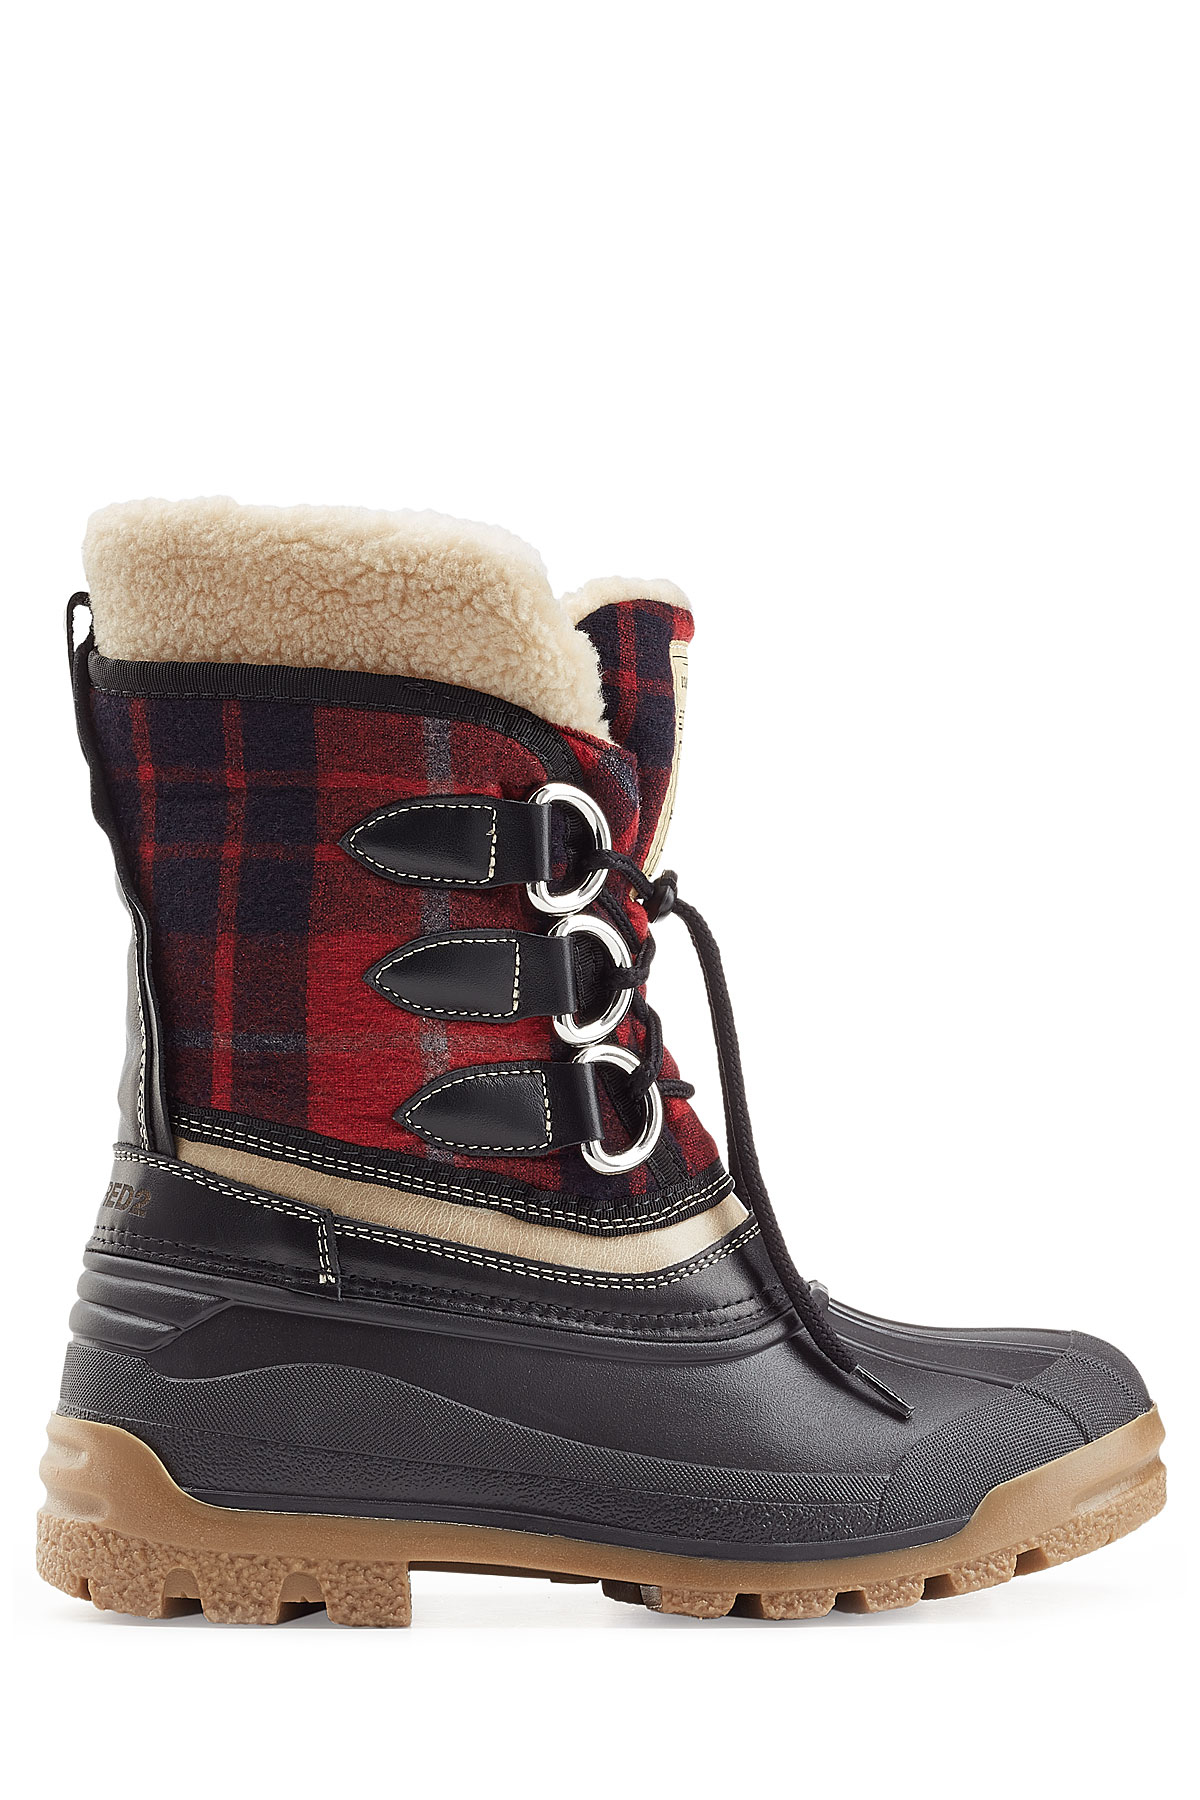 dsquared 178 leather and rubber boots multicolor in black